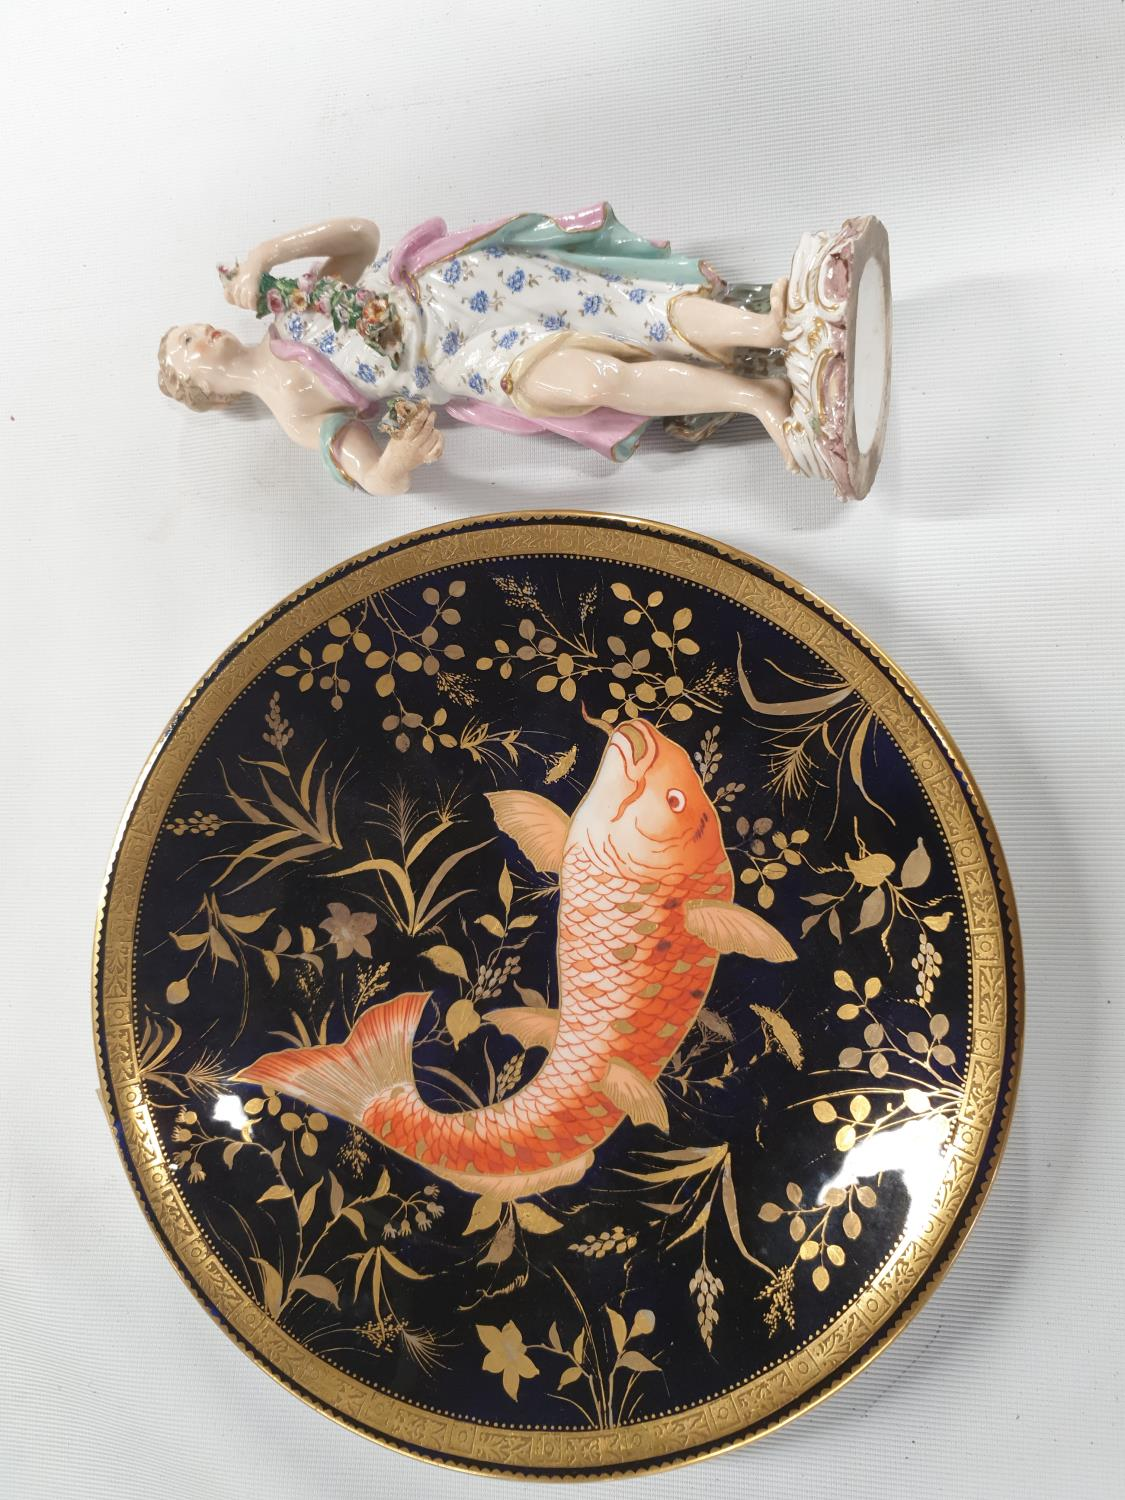 Lot 358C - A Royal Crown Derby Plate with hand painted decoration along with a porcelain Figure.